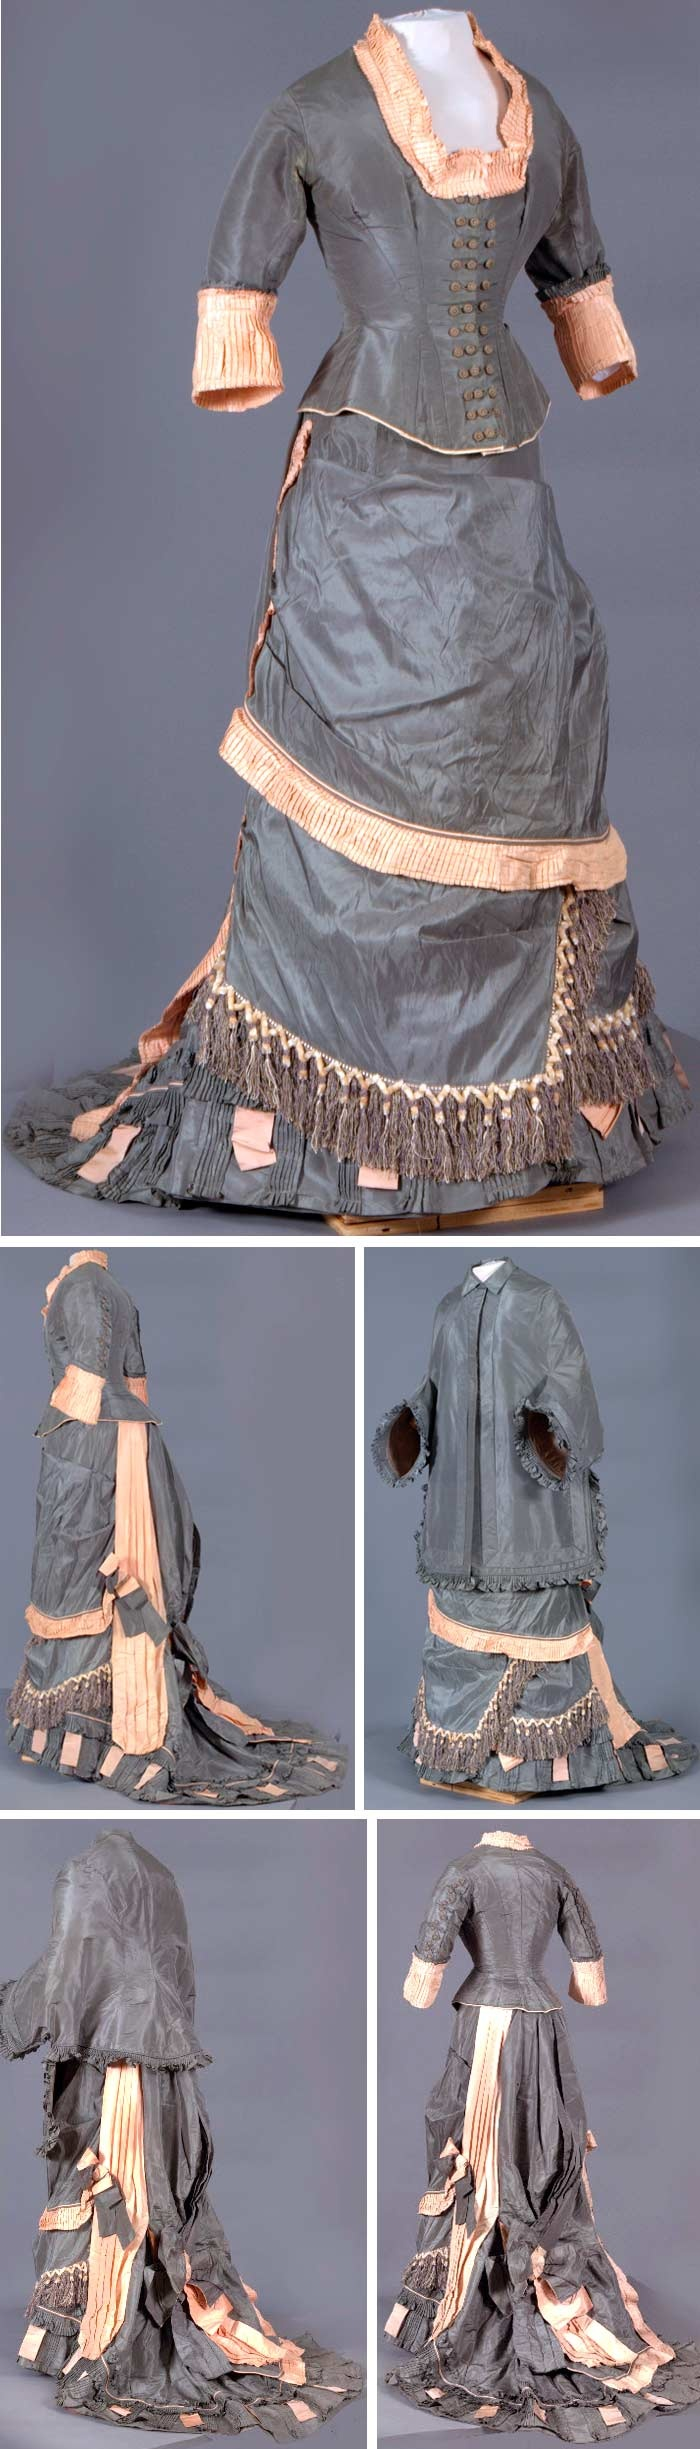 Pale salmon and gray silk taffeta bustle ensemble, ca. 1870s, trimmed with pale salmon taffeta ruffles and white and gray tassel trim, swags, bustle, and train; fitted bodice with 3/4 sleeves, square neckline and triple button closure up front.Vassar College